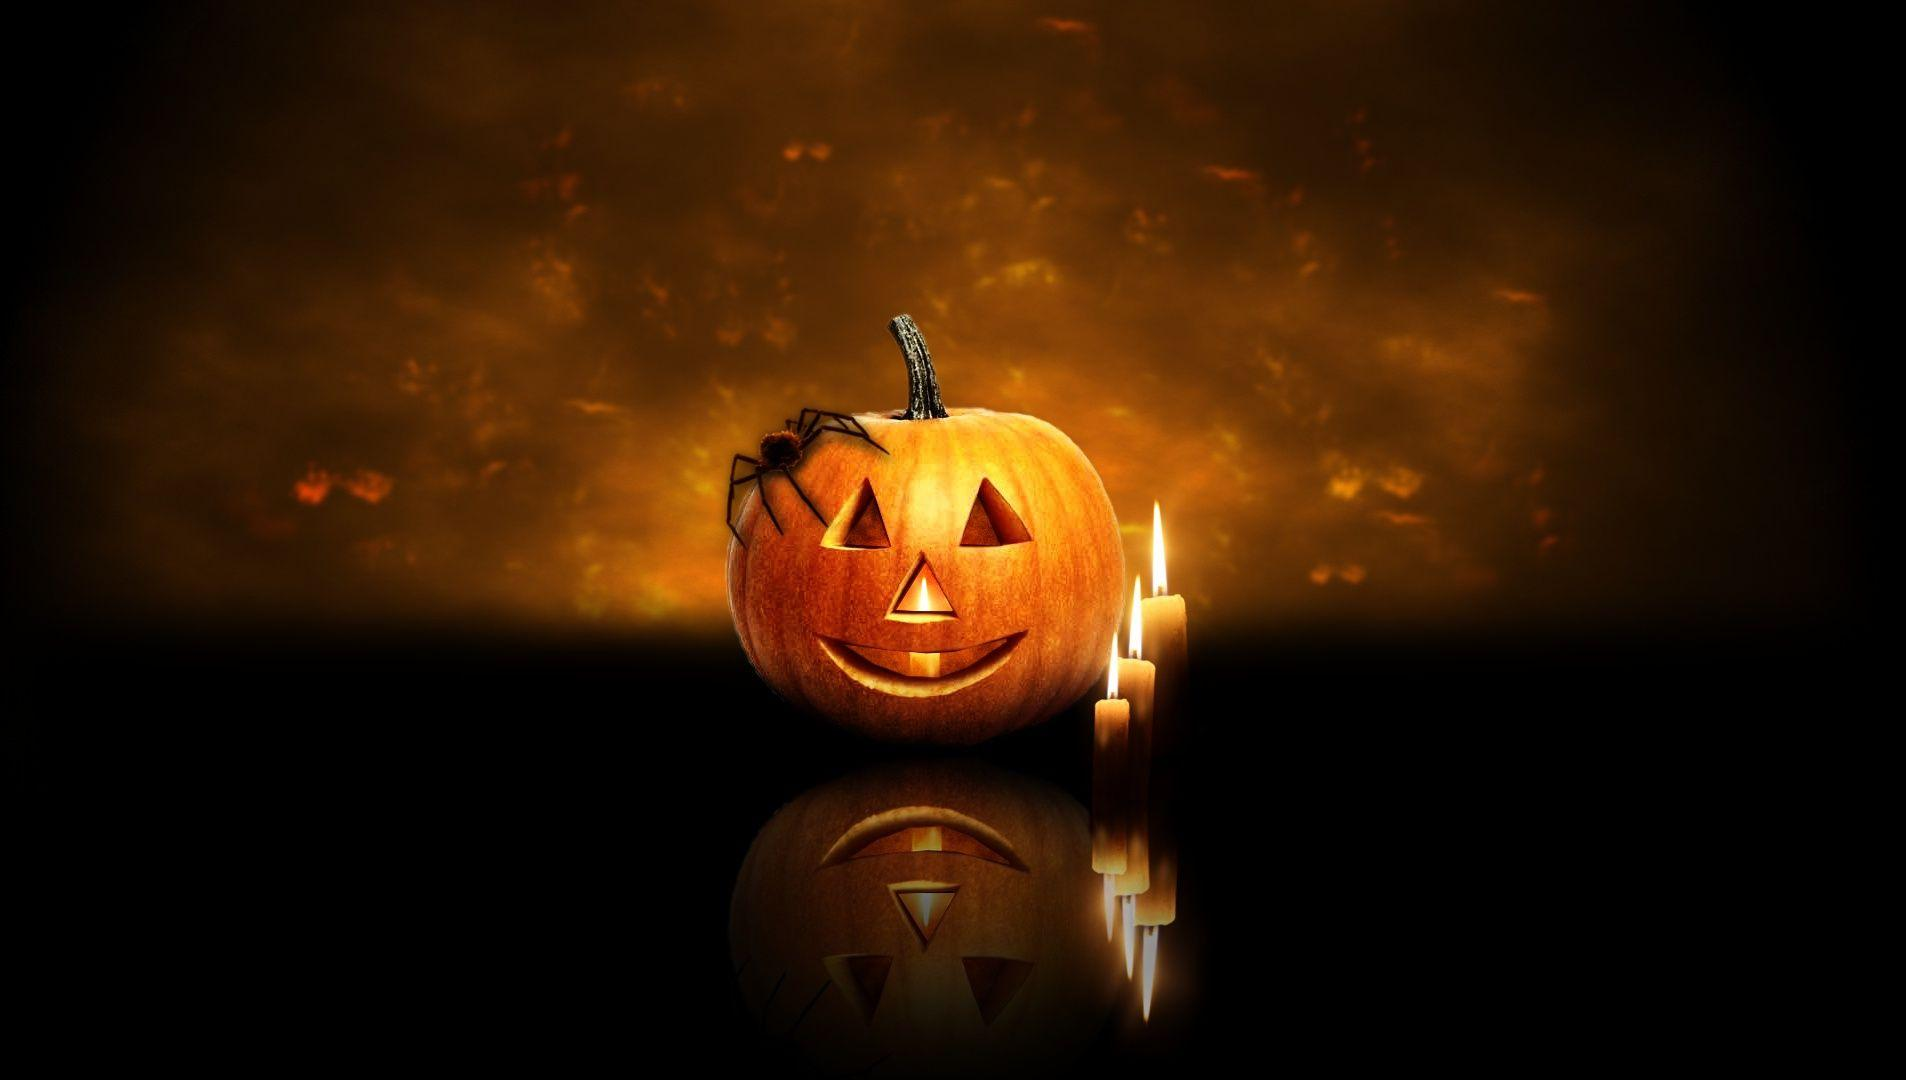 Wallpapers For > Halloween Pumpkin Desktop Backgrounds